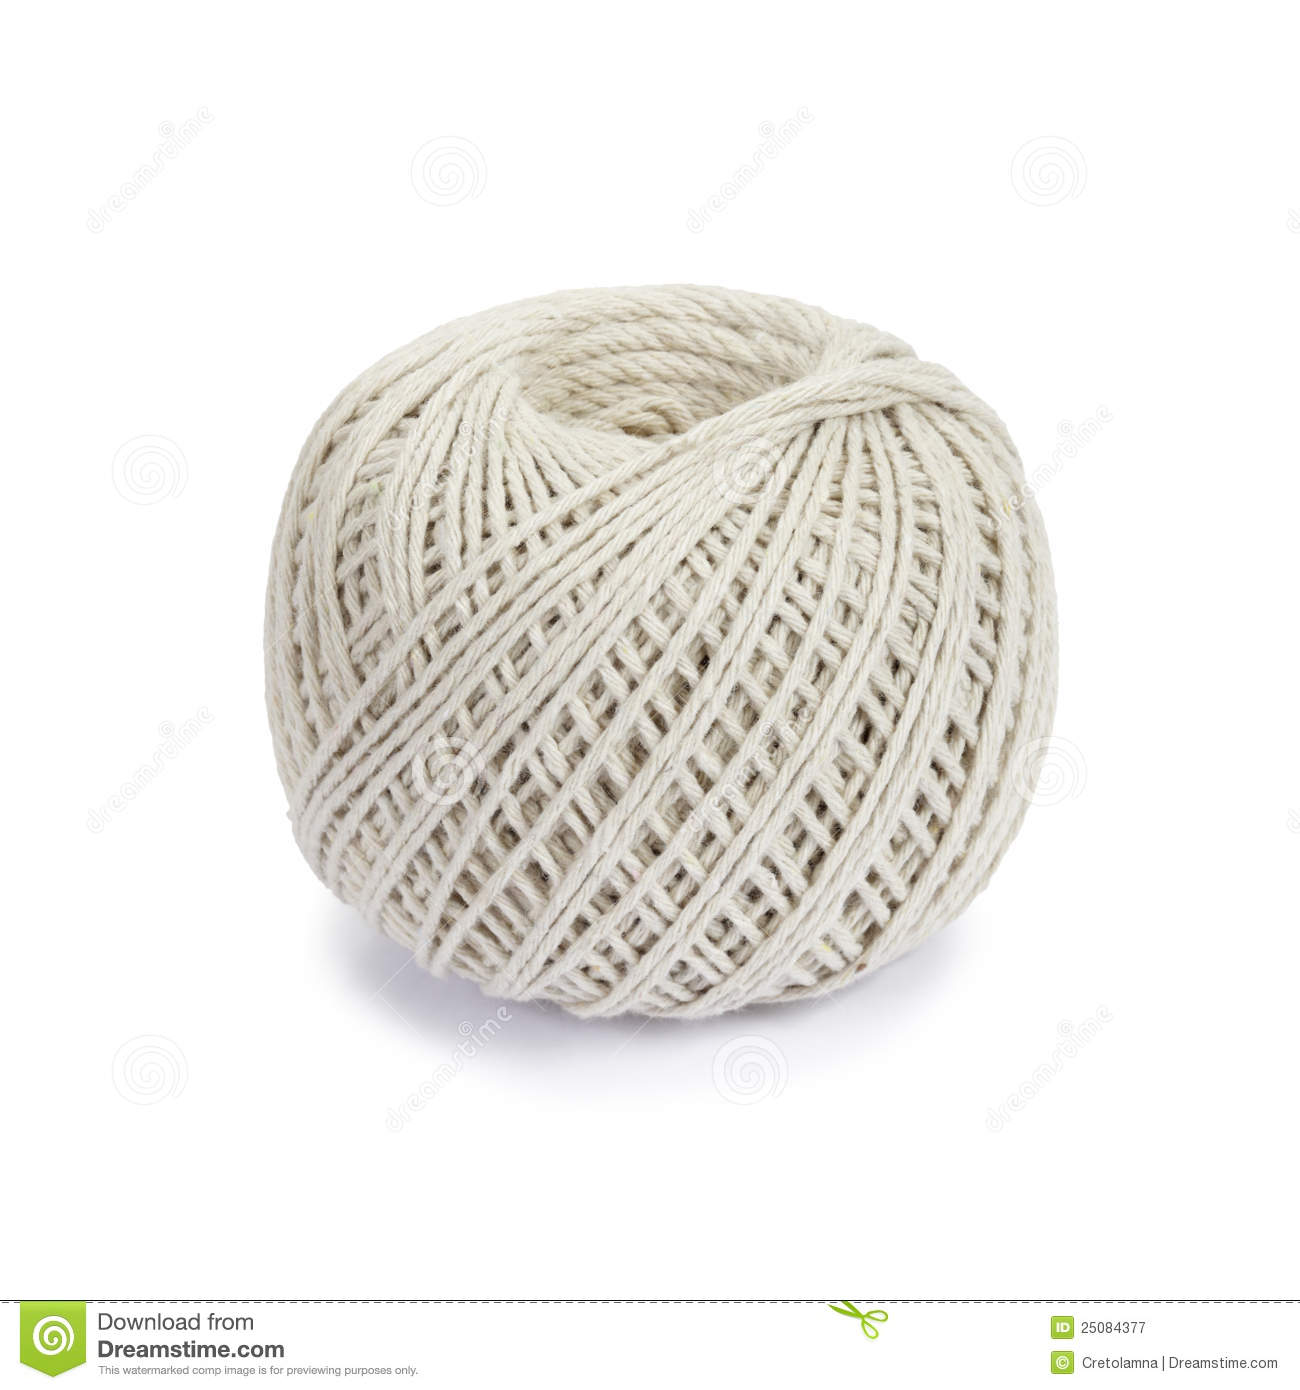 Ball Of String. Royalty Free Stock Photography - Image: 25084377